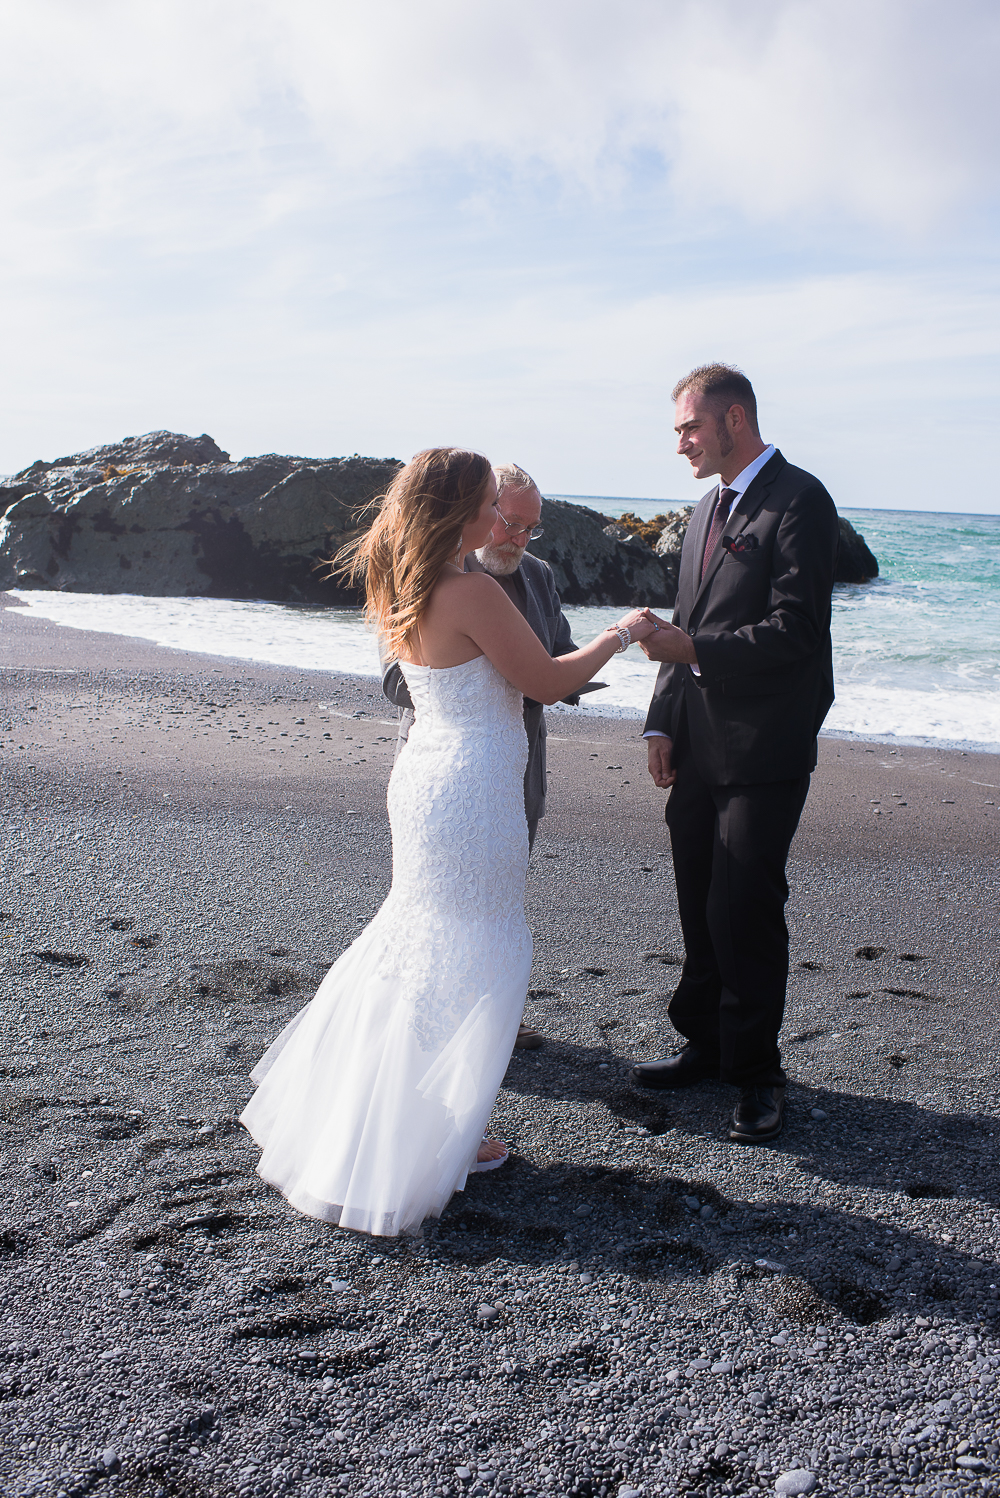 Shelter Cove-Intimate Destination beach Wedding-Parky's Pics Photography-Humboldt County_-2.jpg